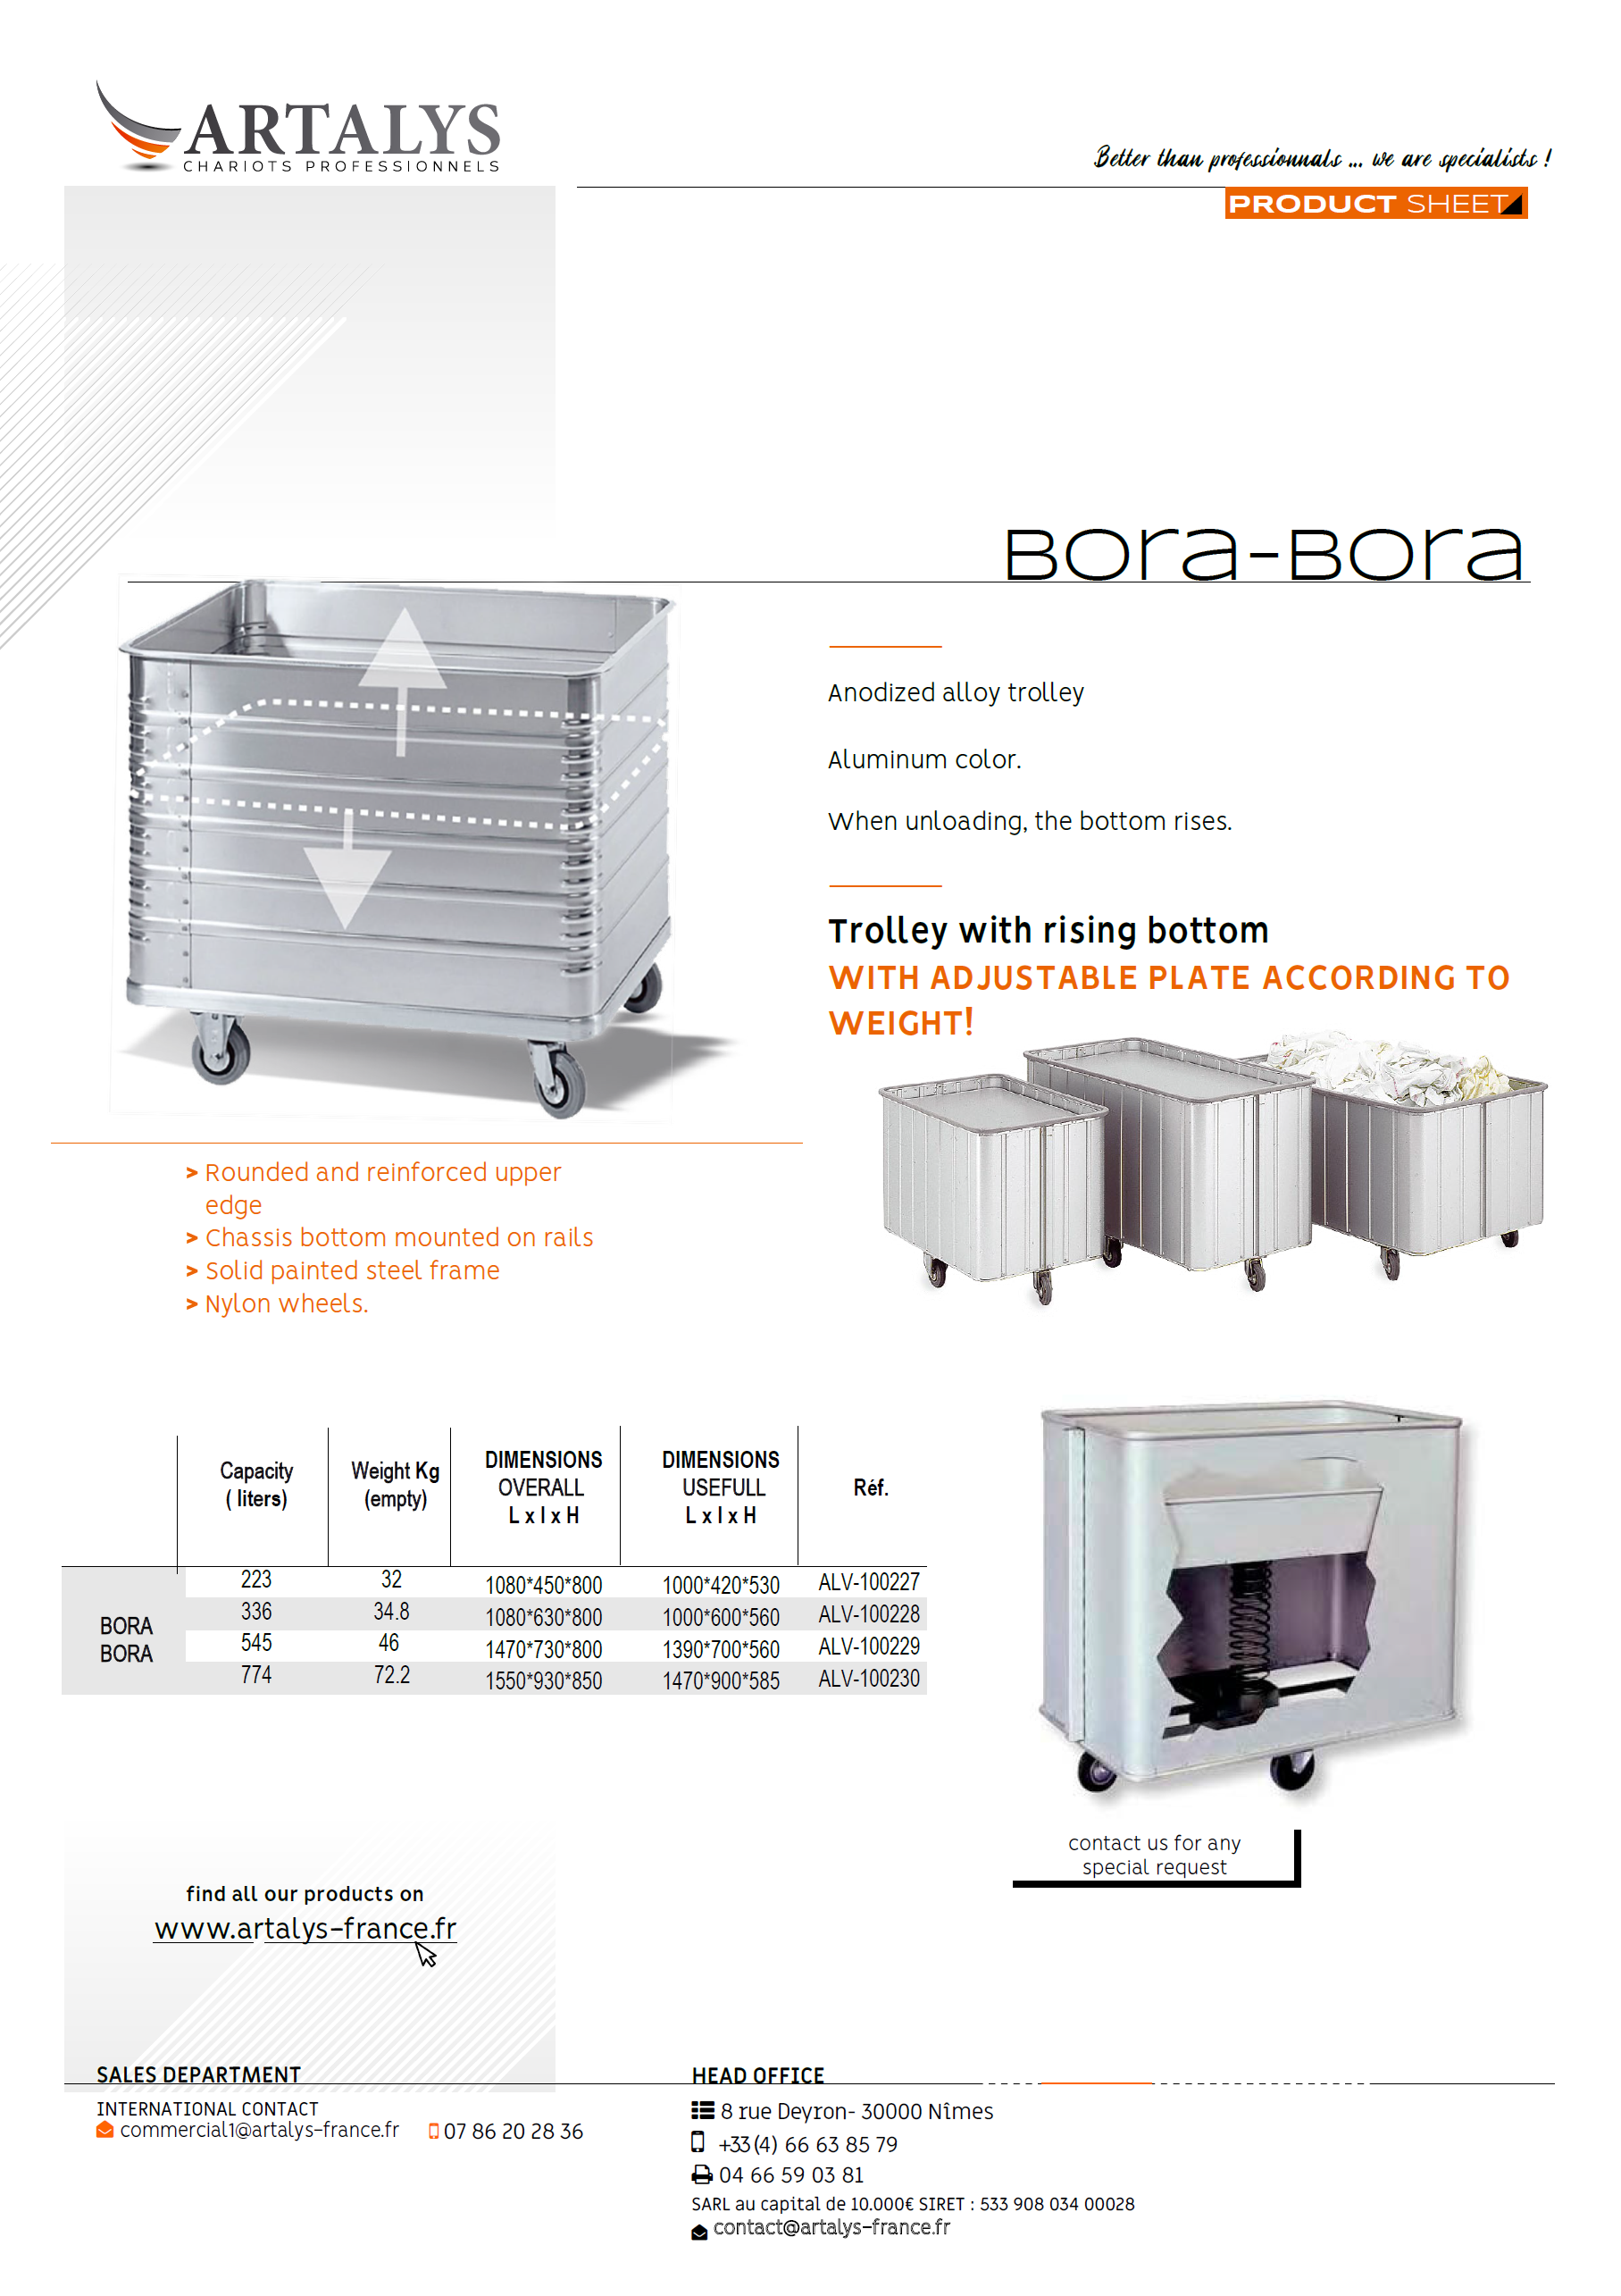 Product sheet of our BoraBora lingerie trolley